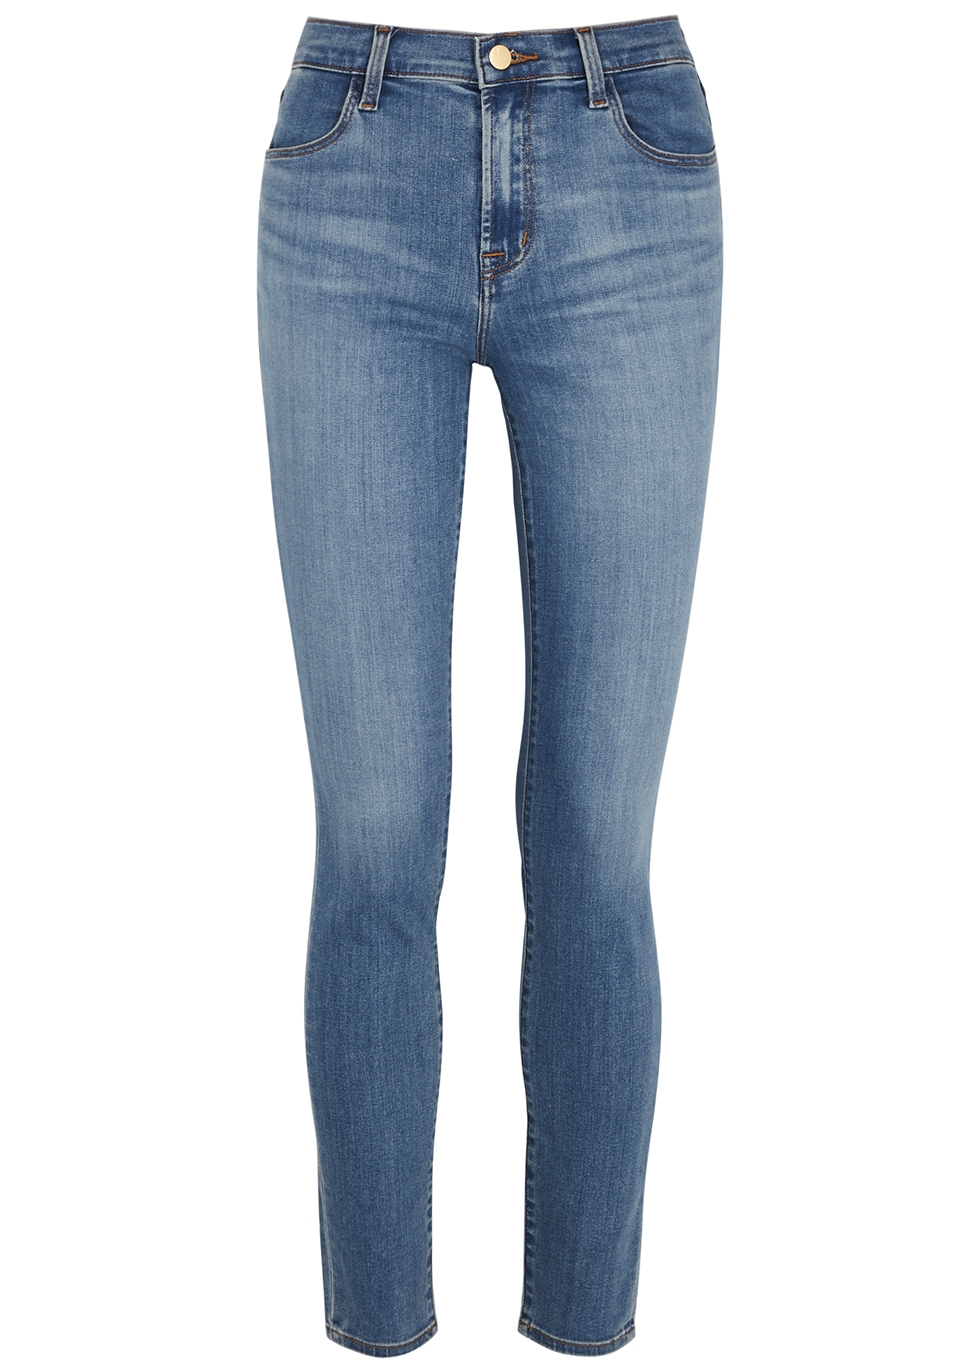 Maria light blue skinny jeans